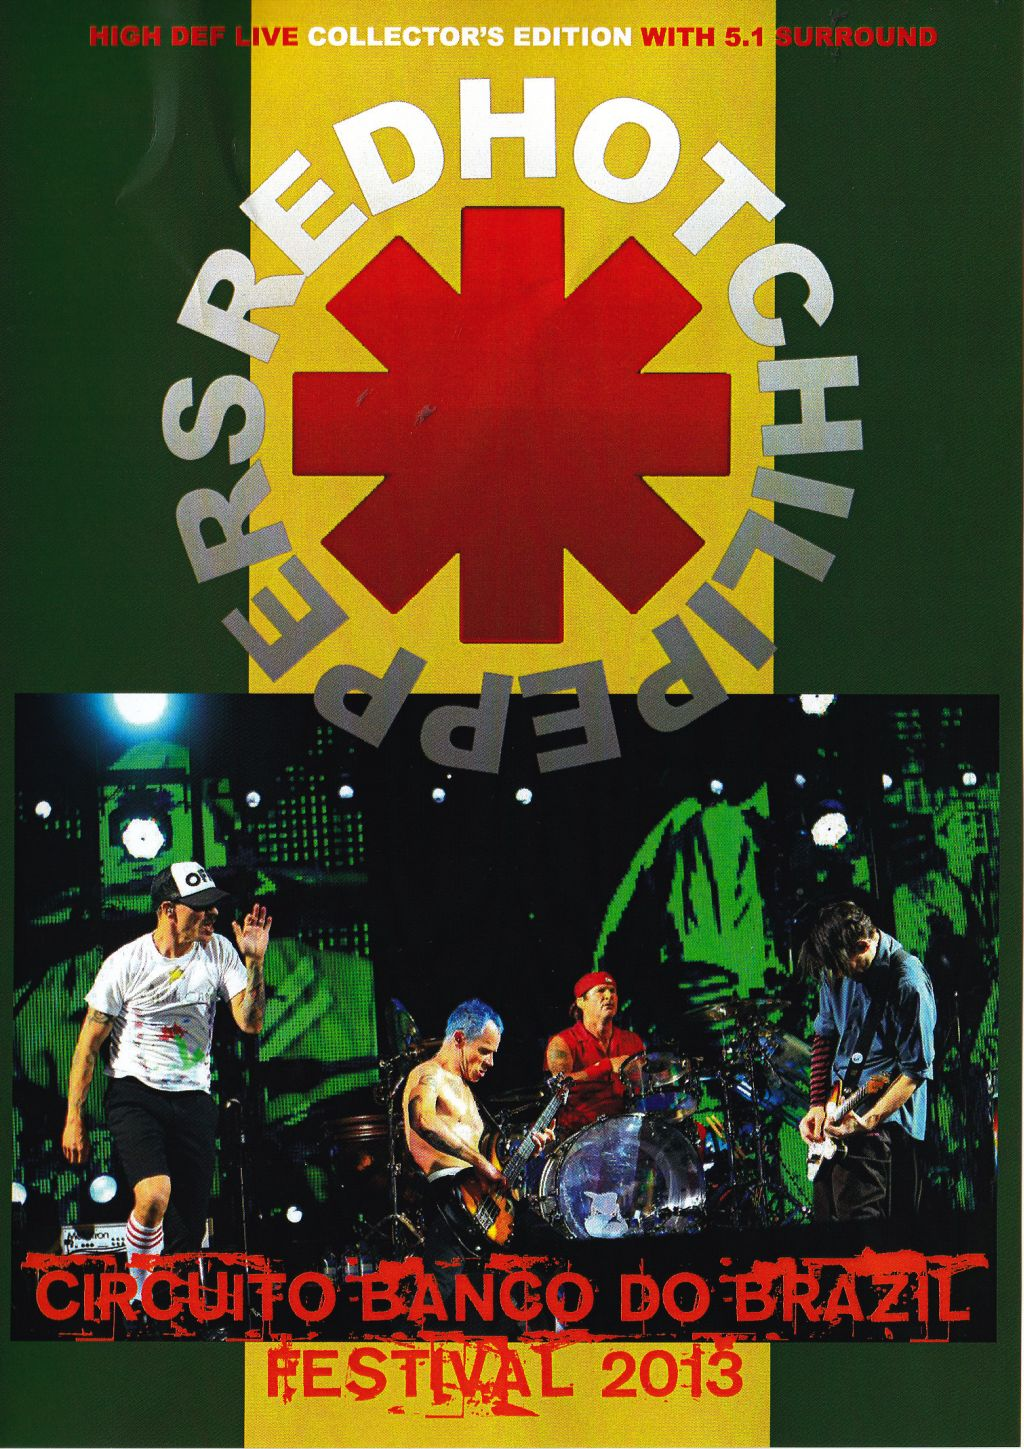 Circuito Banco Do Brasil : Red hot chili peppers circuito banco do brazil festival